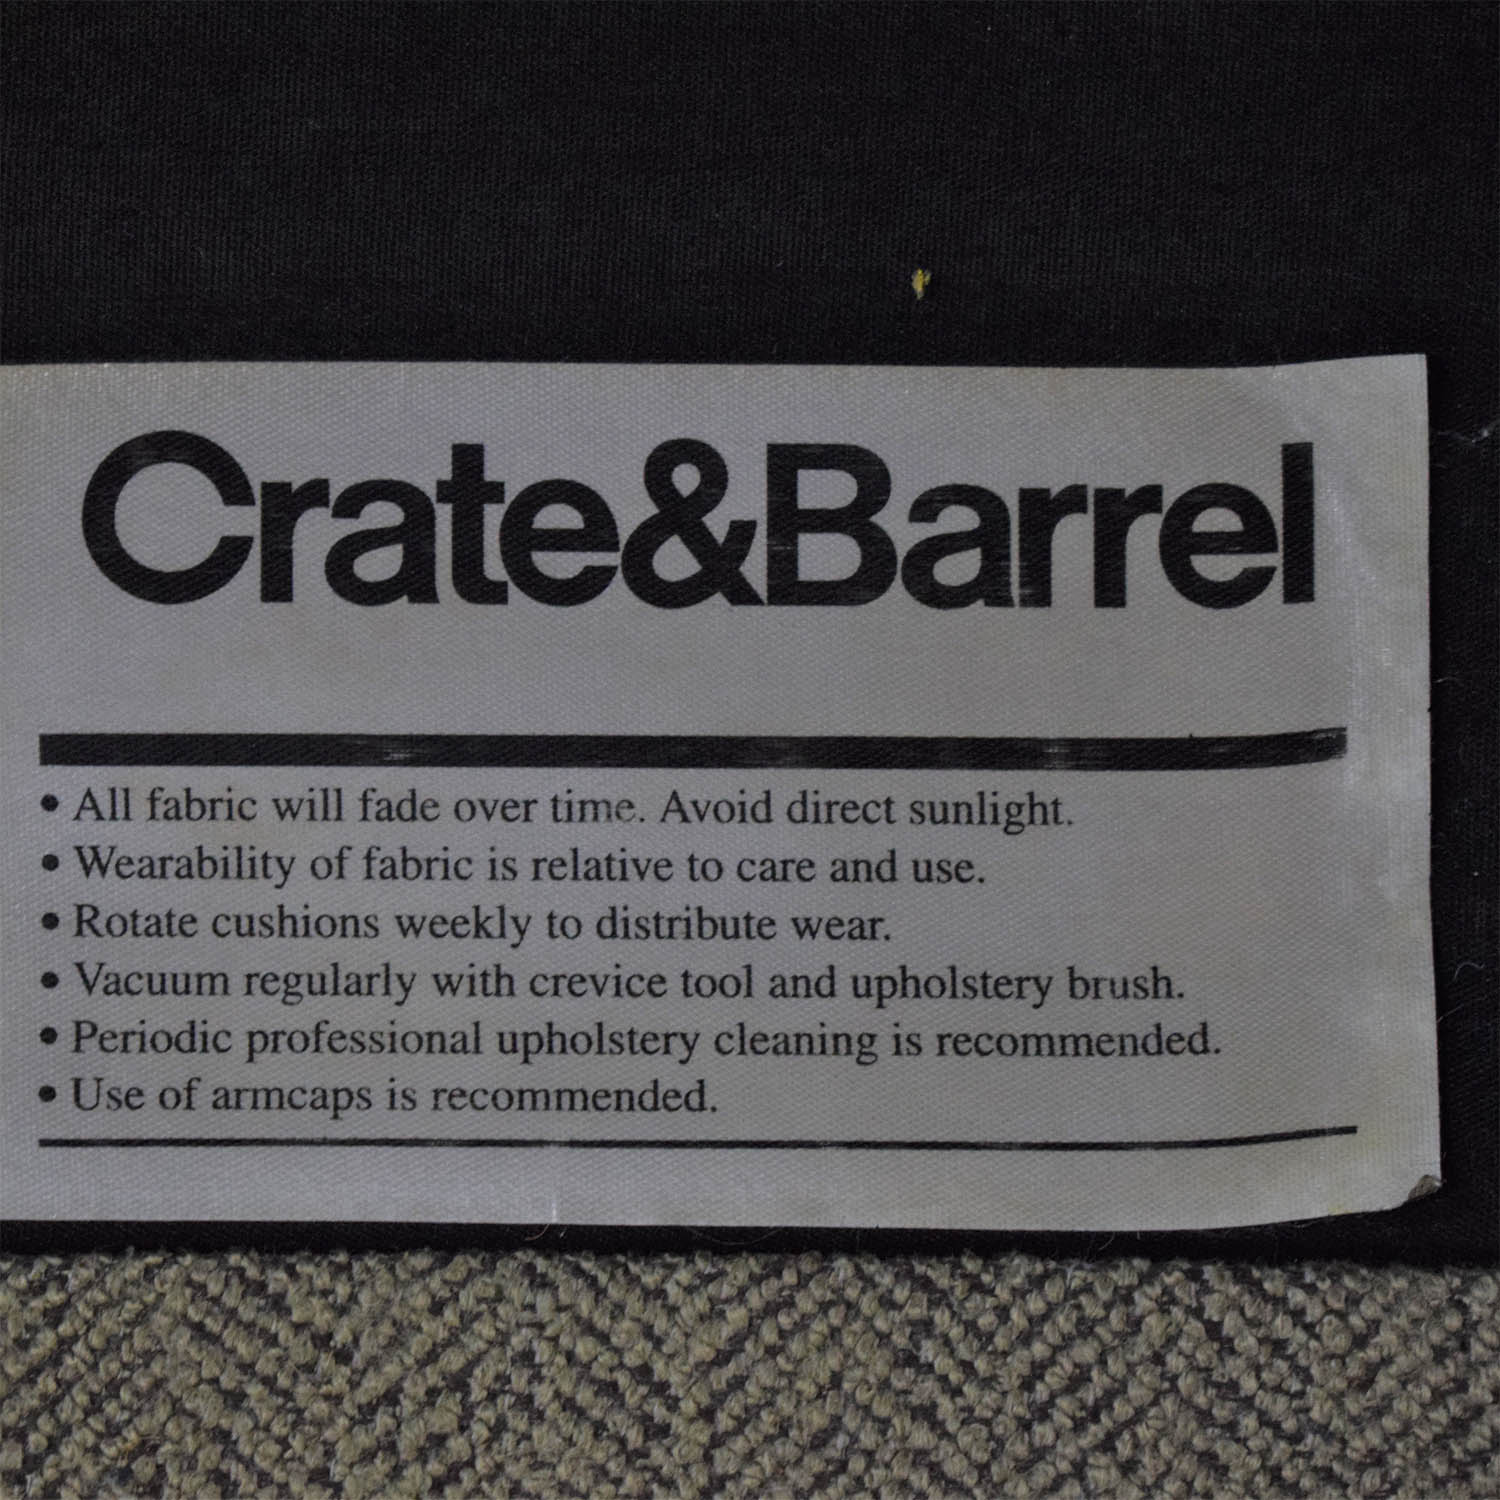 buy Crate & Barrel Milo Baughman Shelter Sleeper Sofa Crate & Barrel Sofa Beds